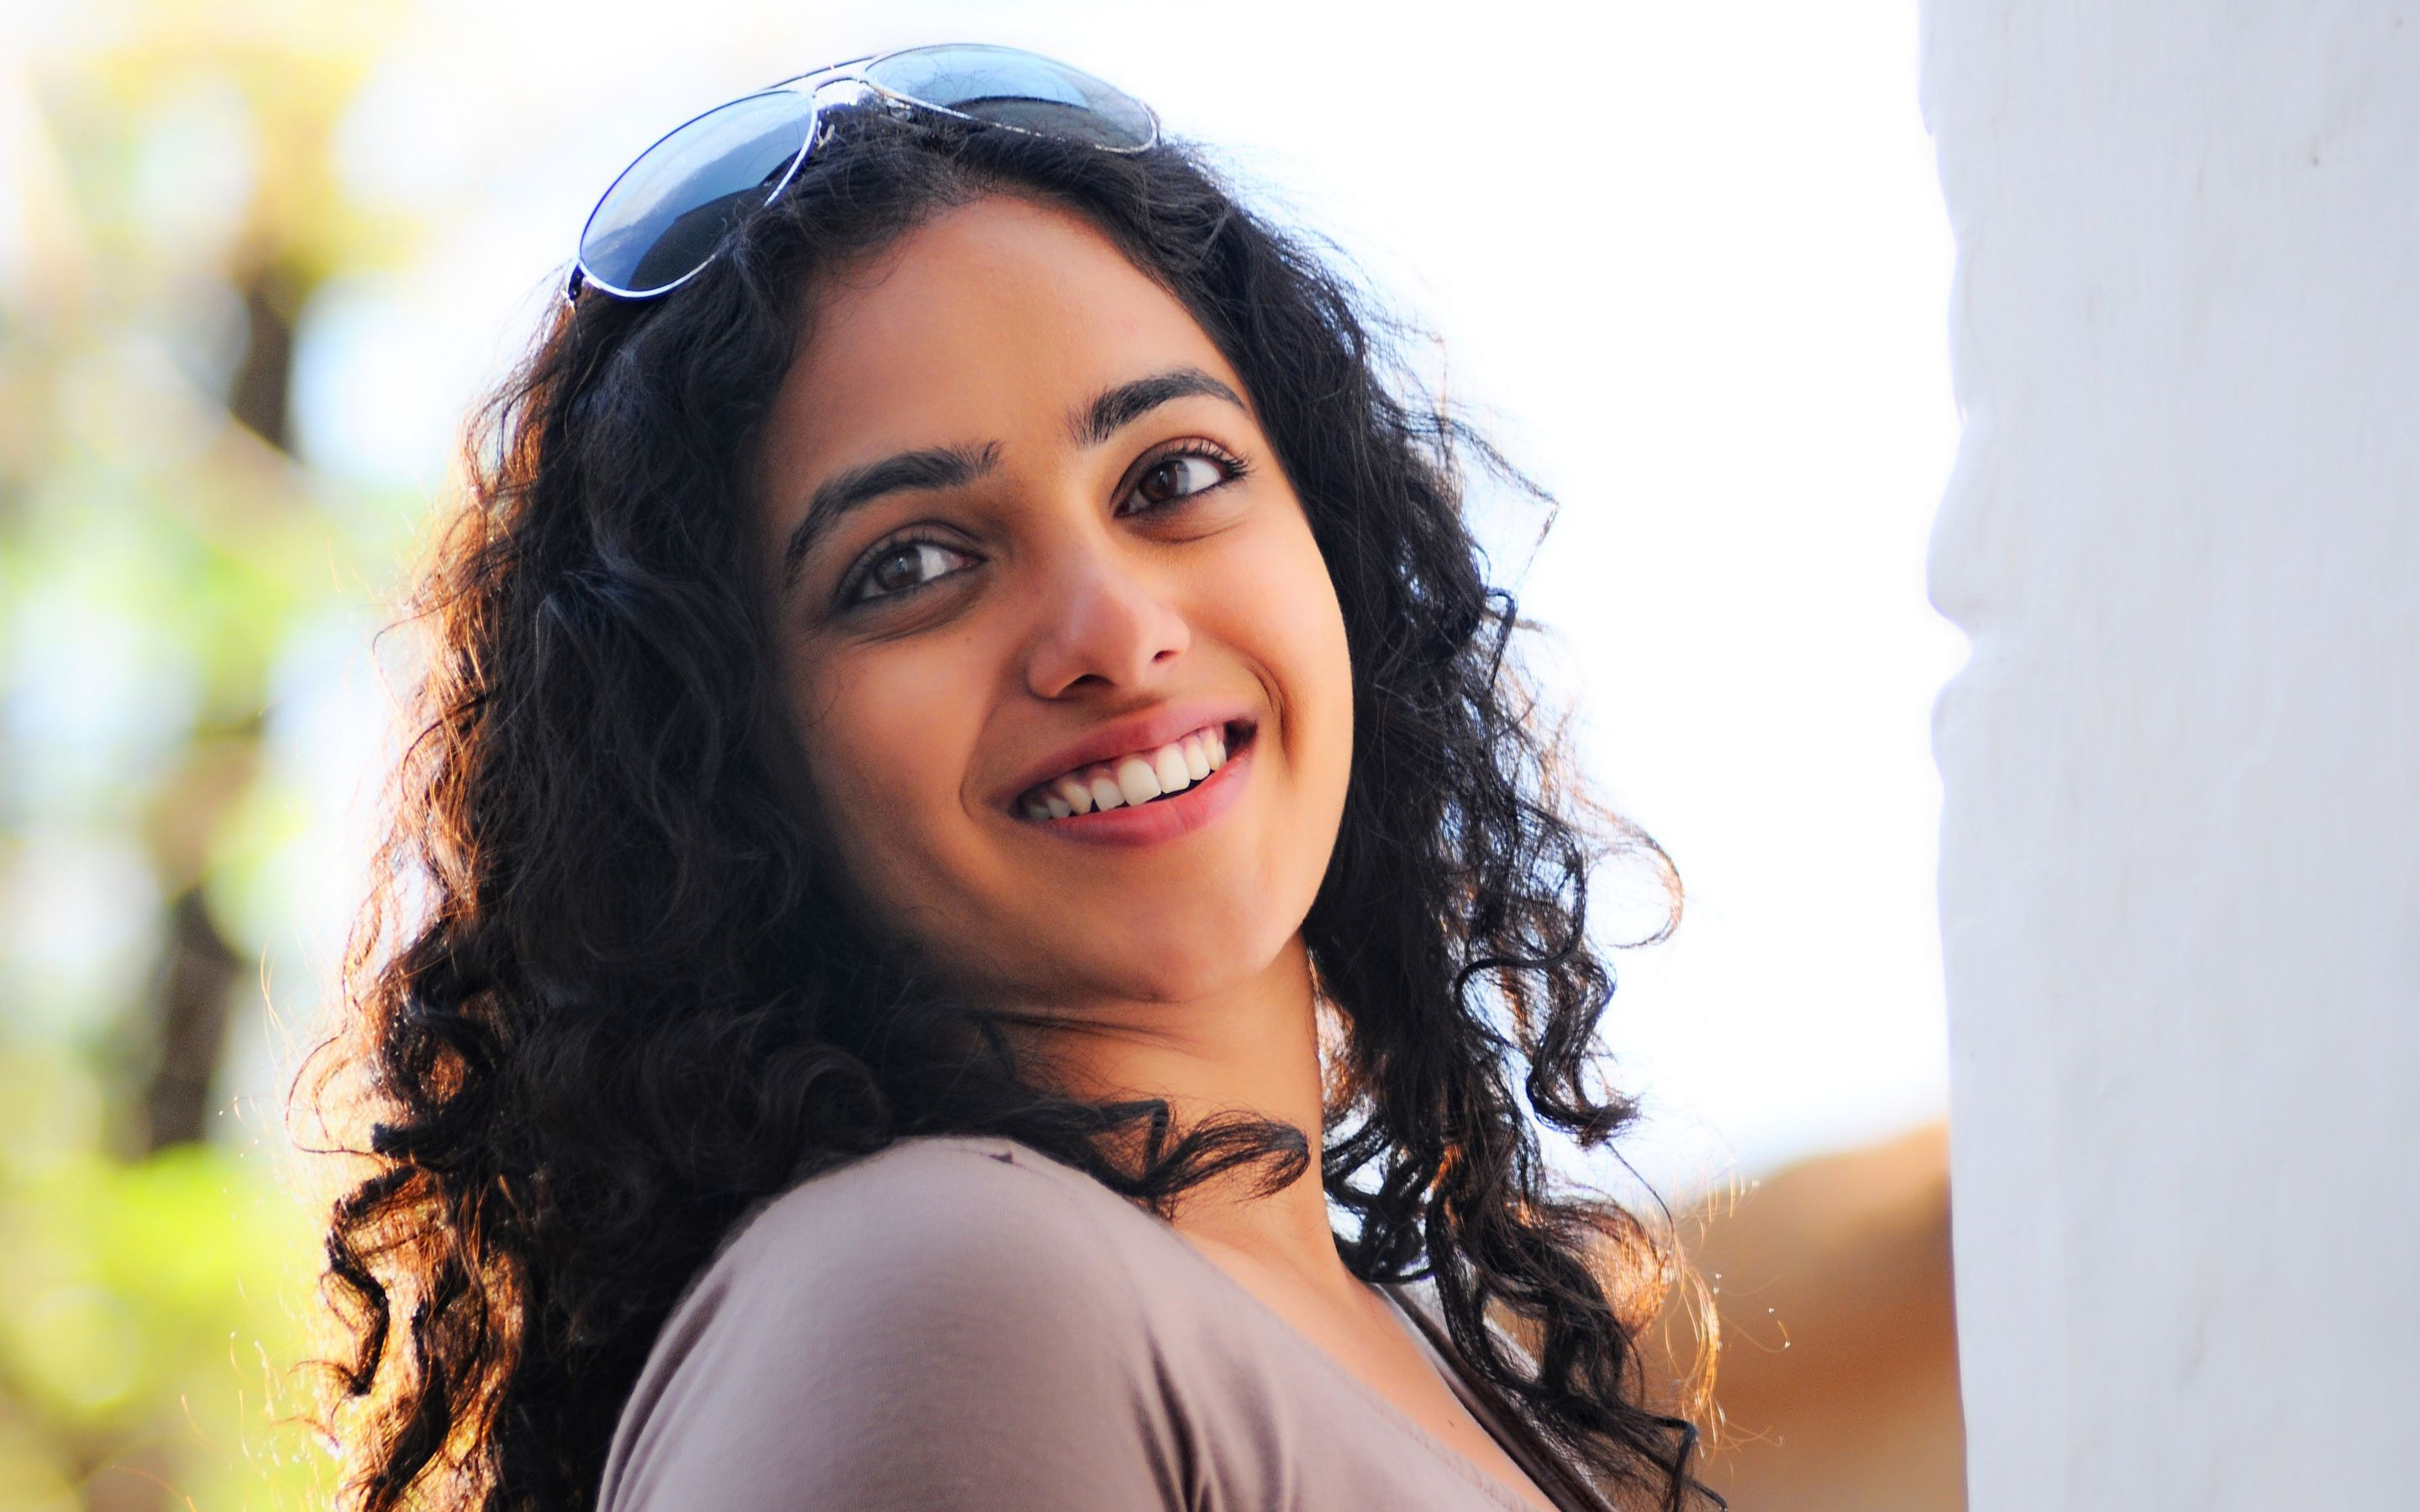 download actress nithya menon wallpaper hd widescreen wallpaper from